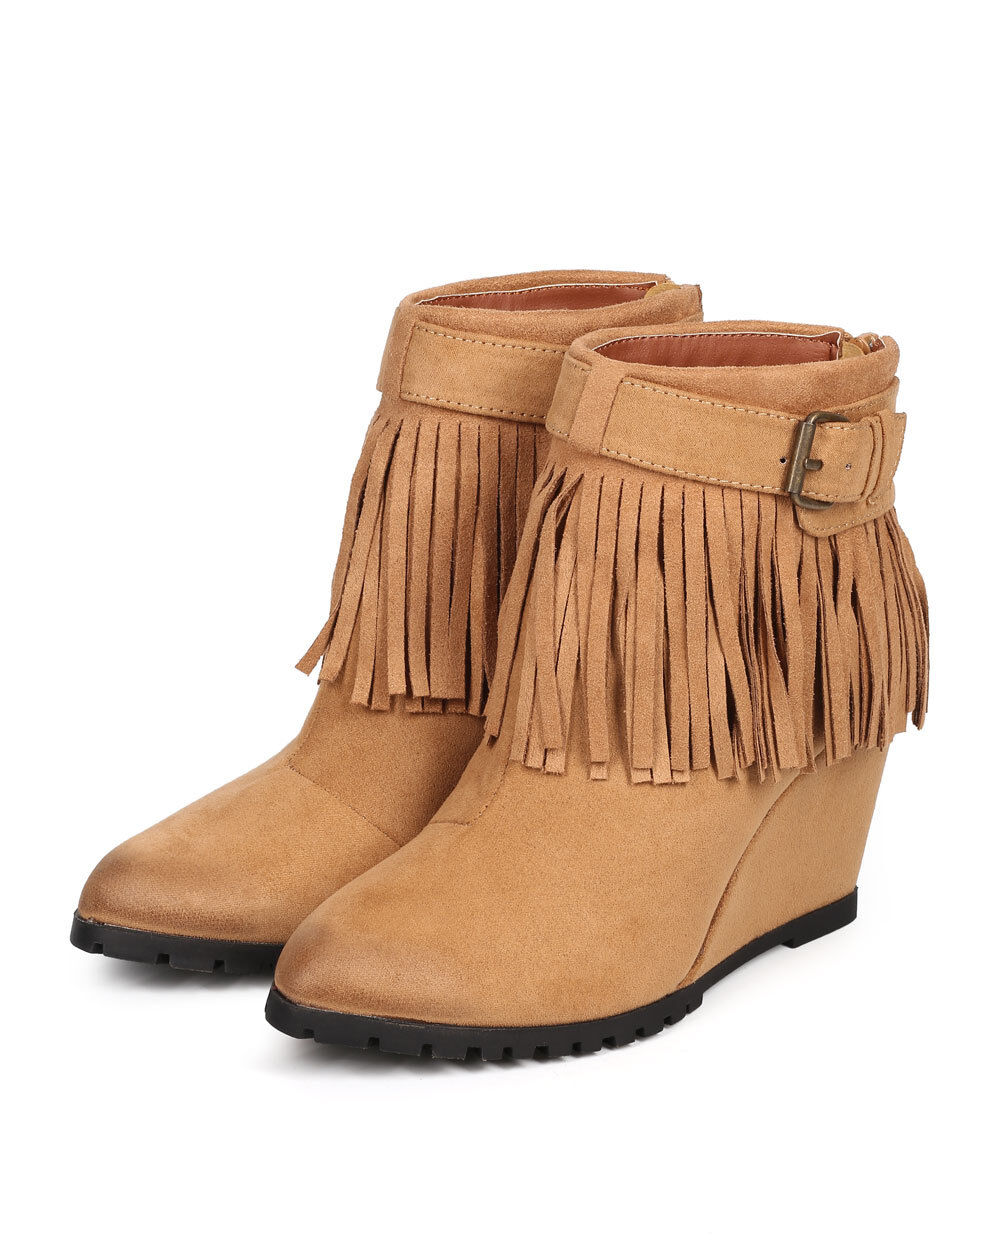 New Women Qupid Tustin-02 Suede Buckle Fringe Wedge Ankle Bootie Size